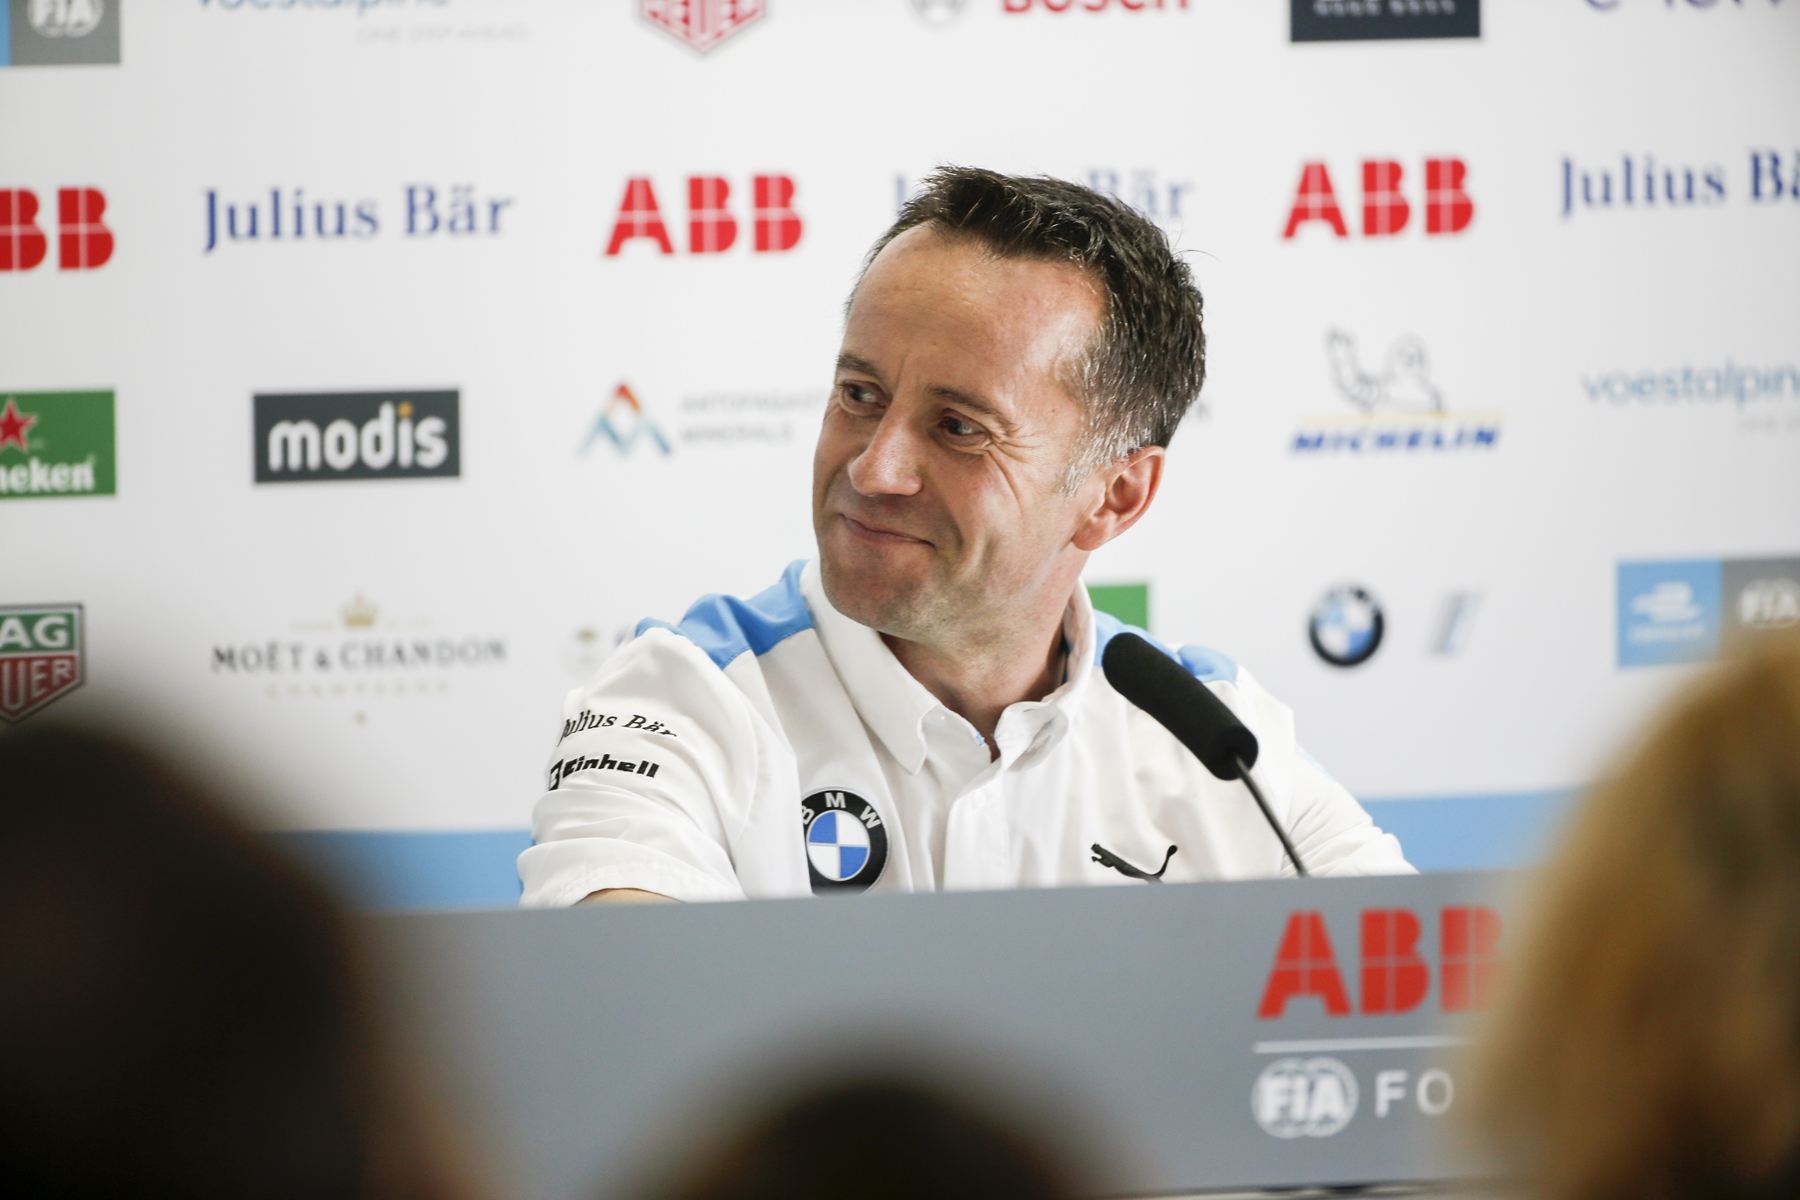 Roger-Griffiths-Press-Conference-BMW-Valencia.jpg